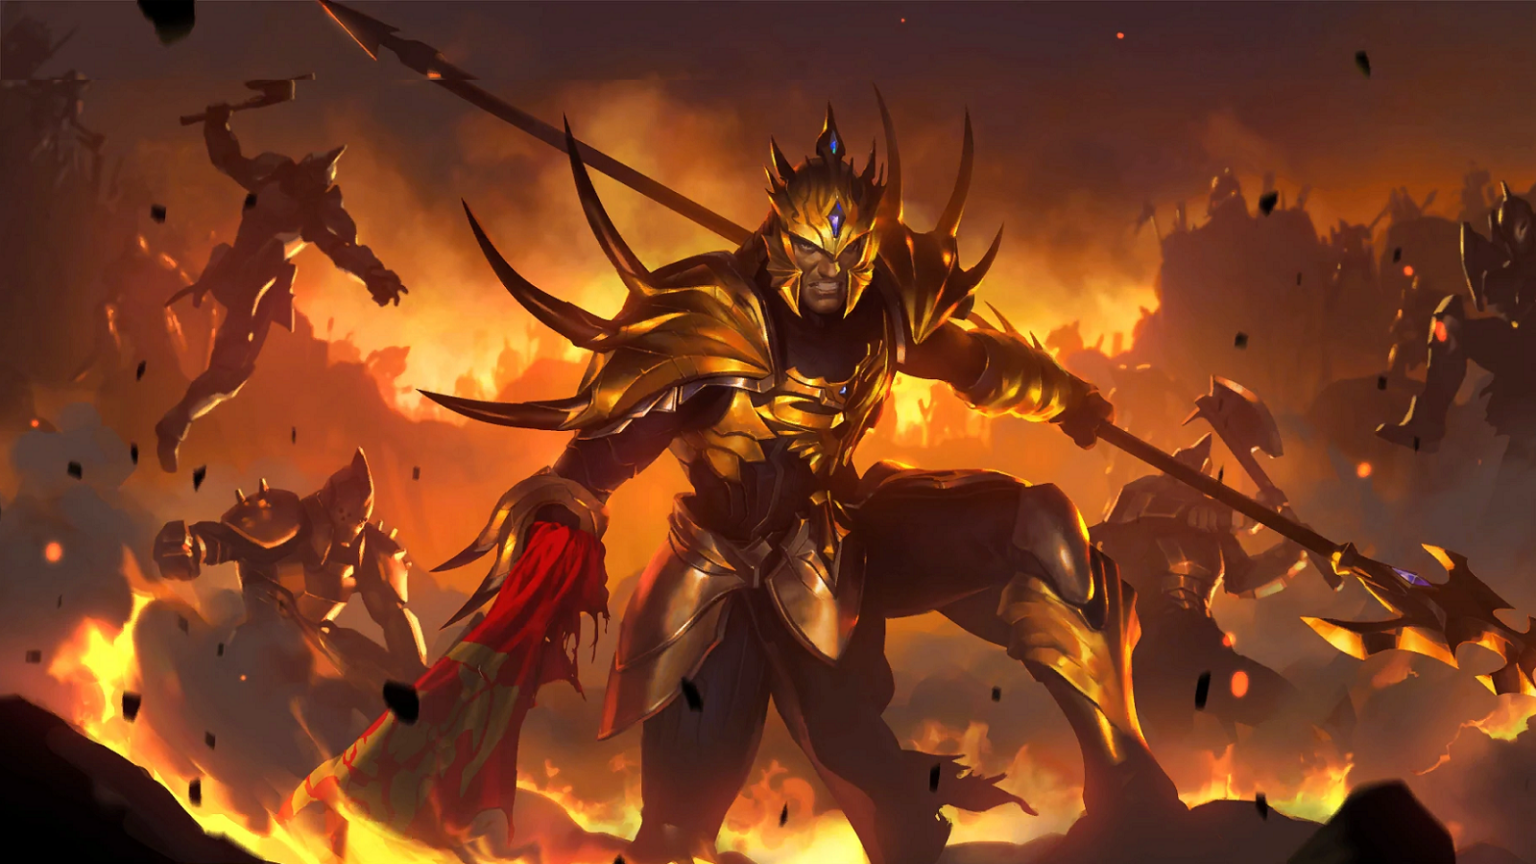 LEGENDS OF RUNETERRA: GUIDE HOW TO PLAY JARVAN IV